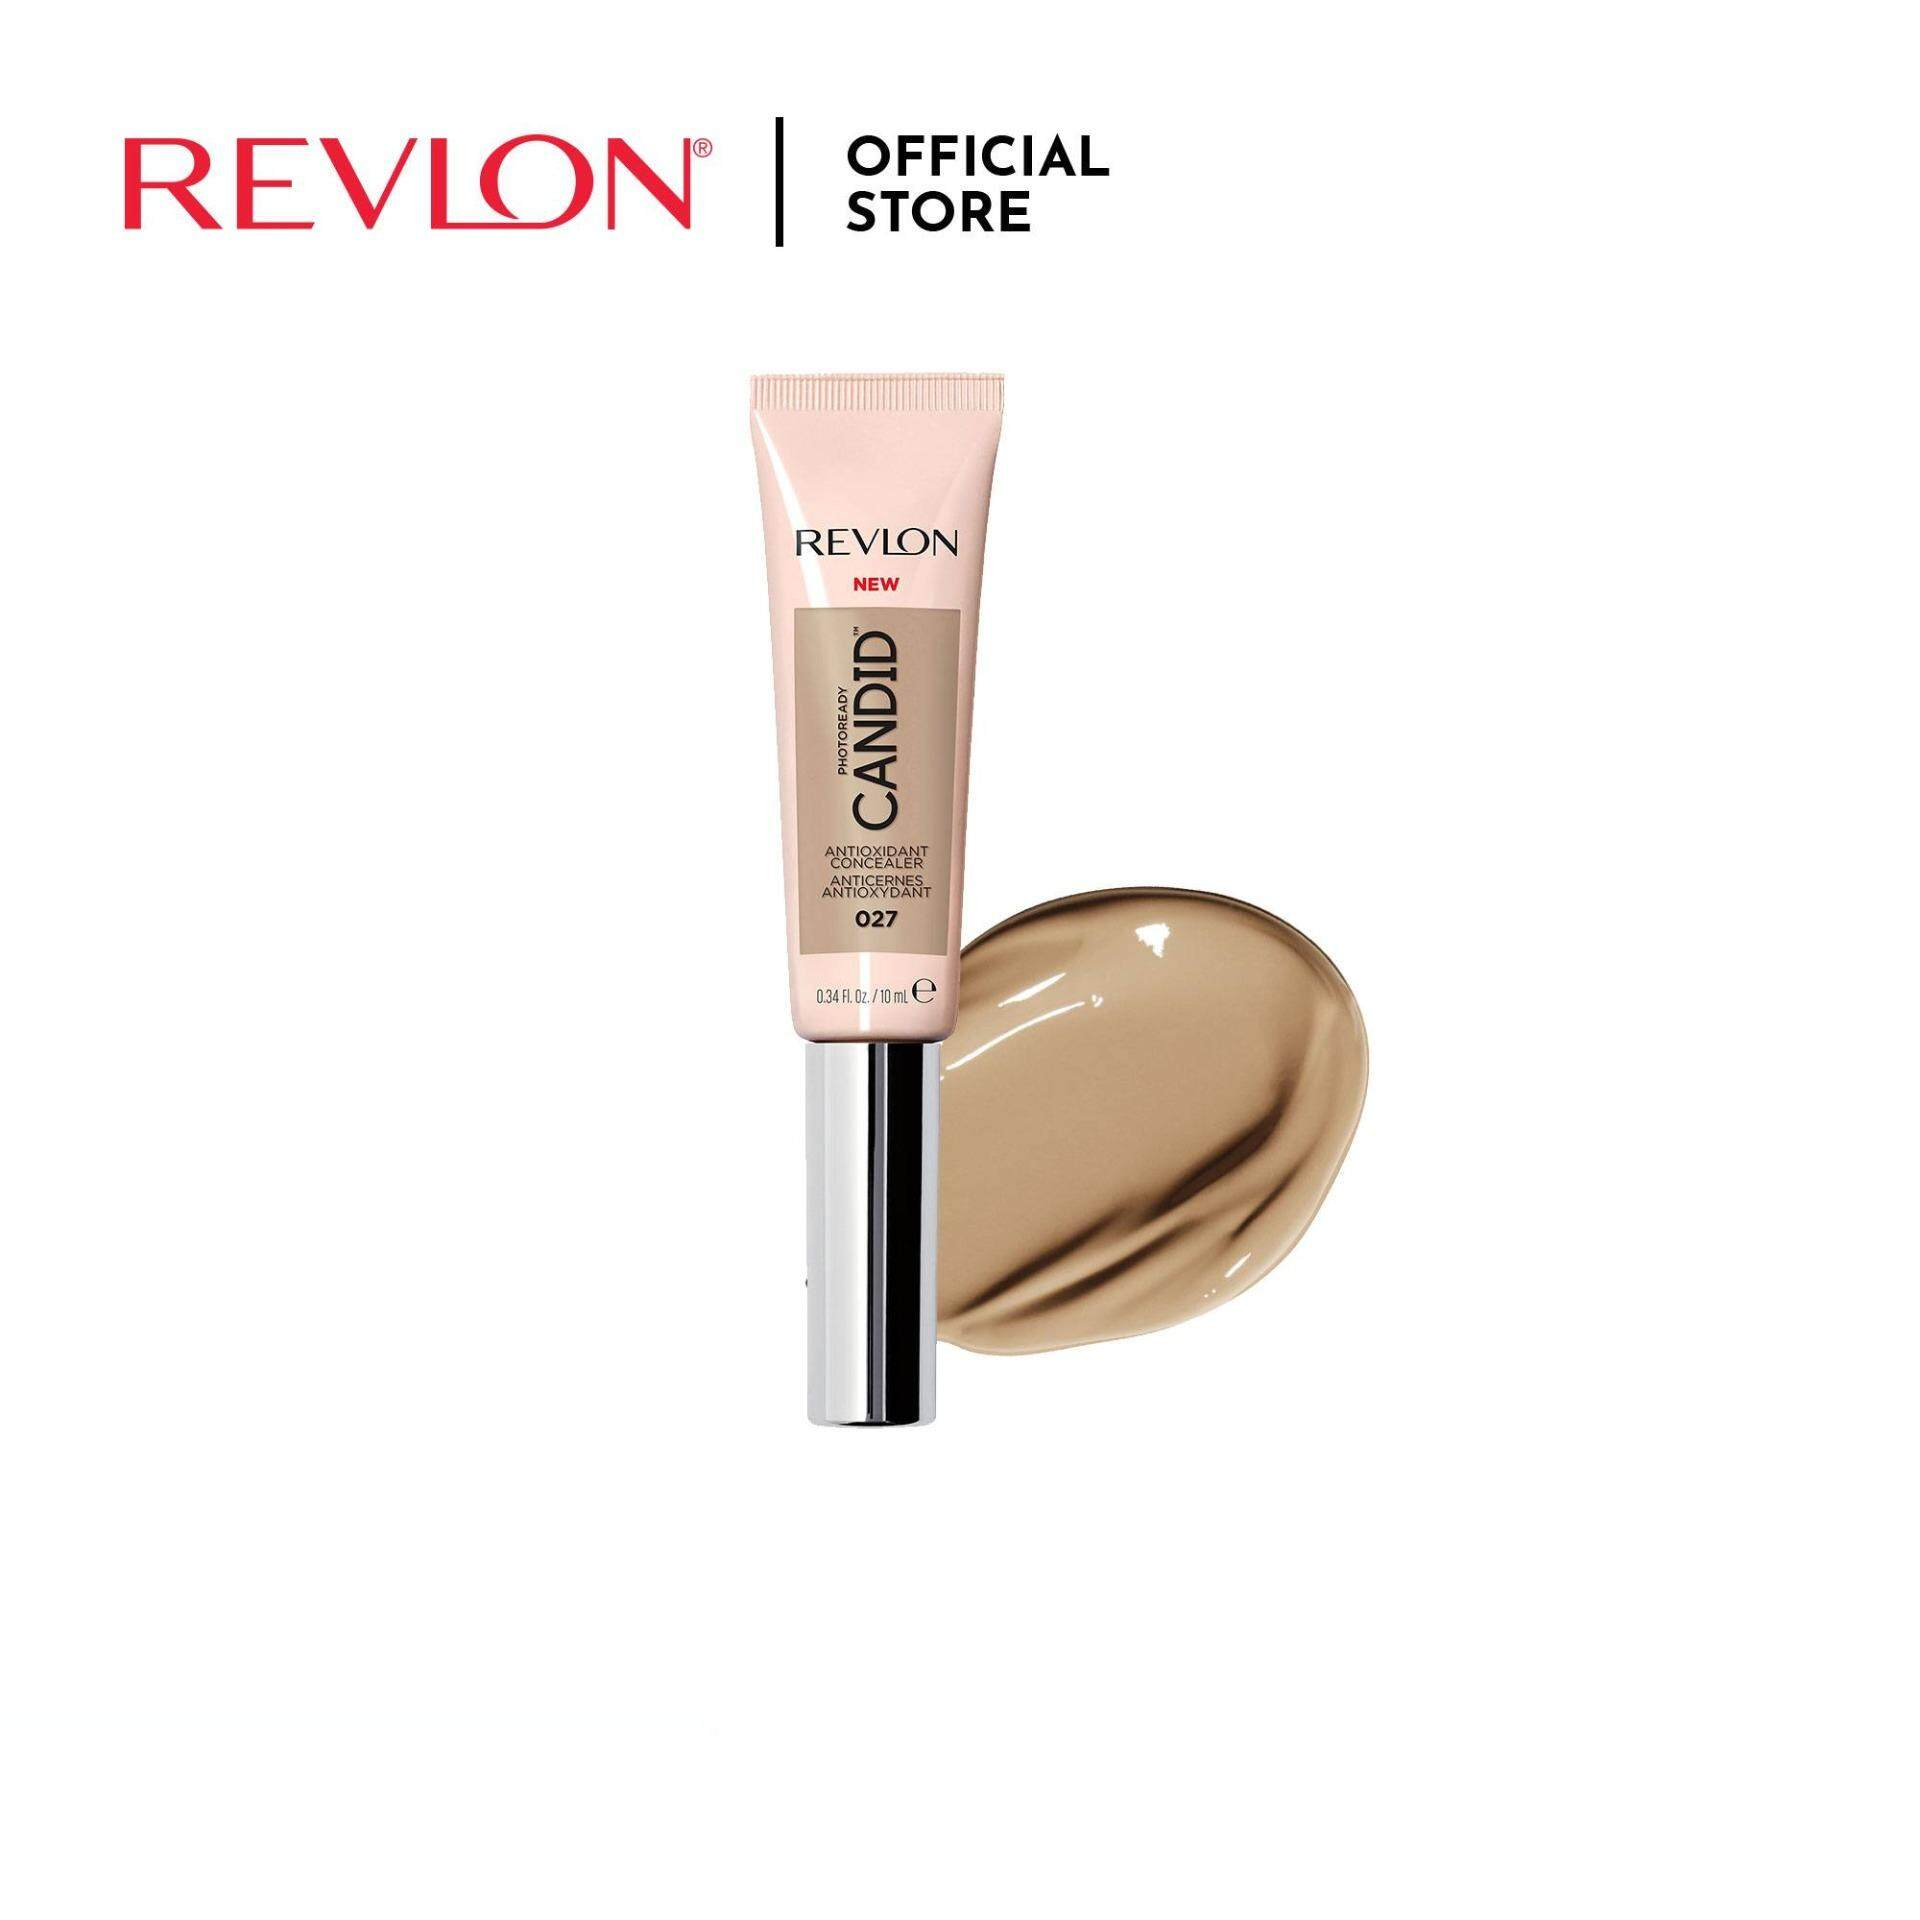 Revlon Photoready Candid Concealer -Biscuit 027